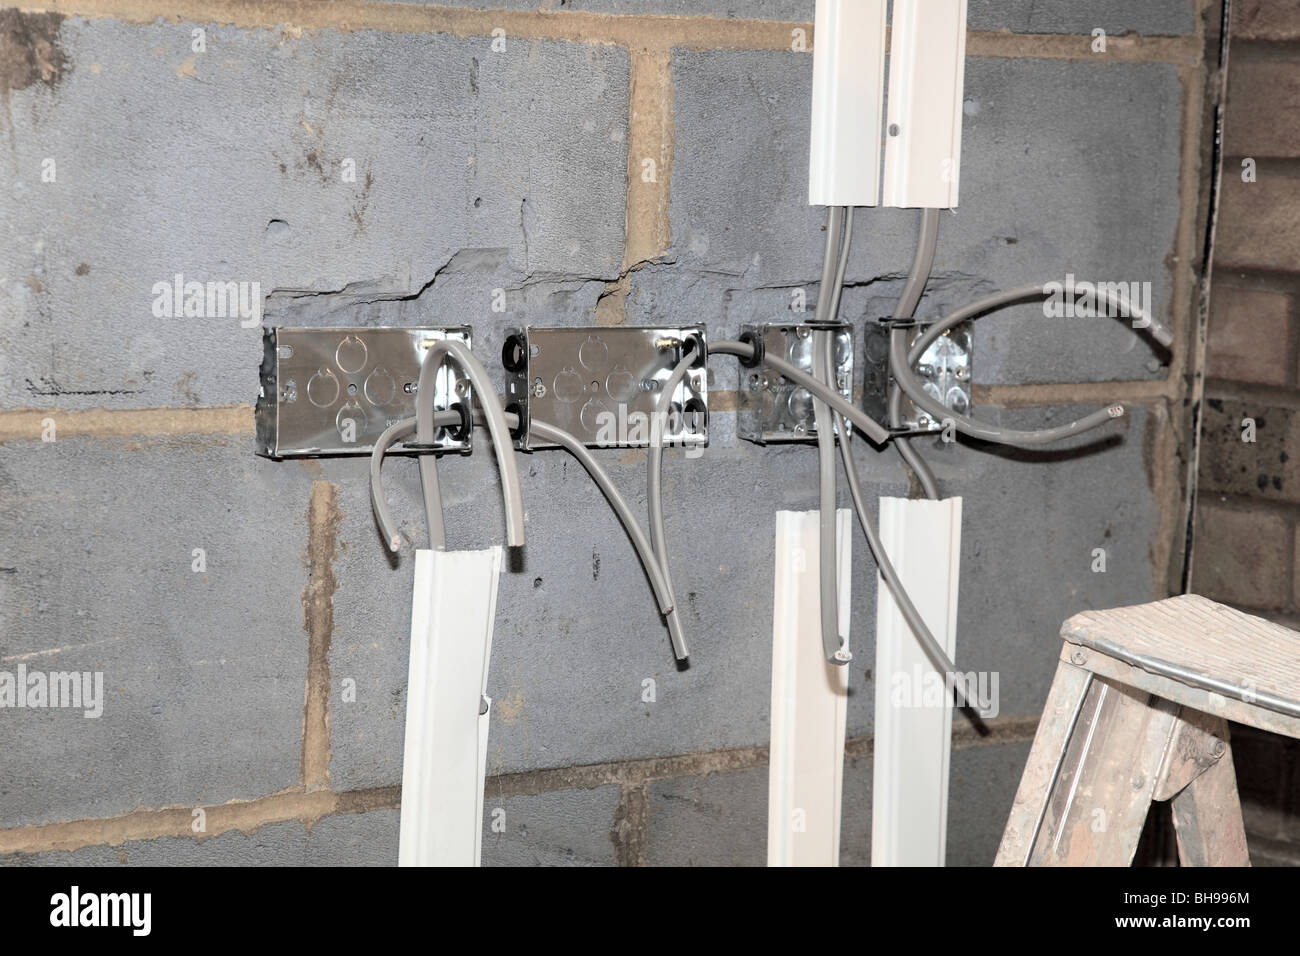 first fix wiring a new home extension stock photo 27864332 alamy rh alamy com Typical House Wiring Circuits wiring a new house extension